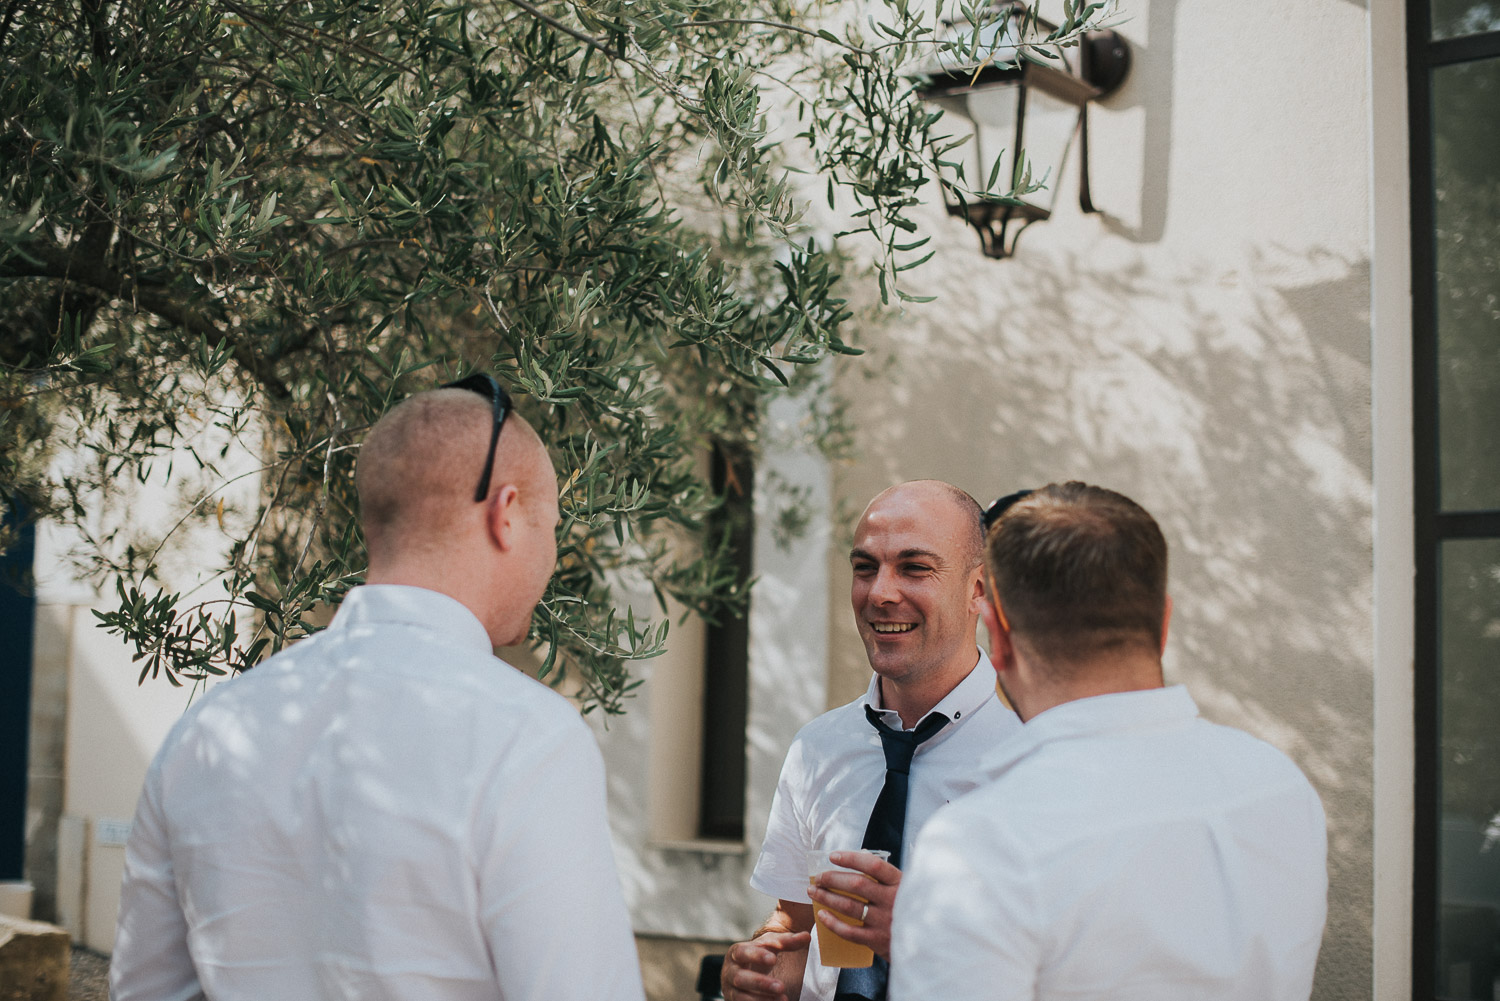 chateau_canet_carcassonne_wedding_katy_webb_photography_france_UK164